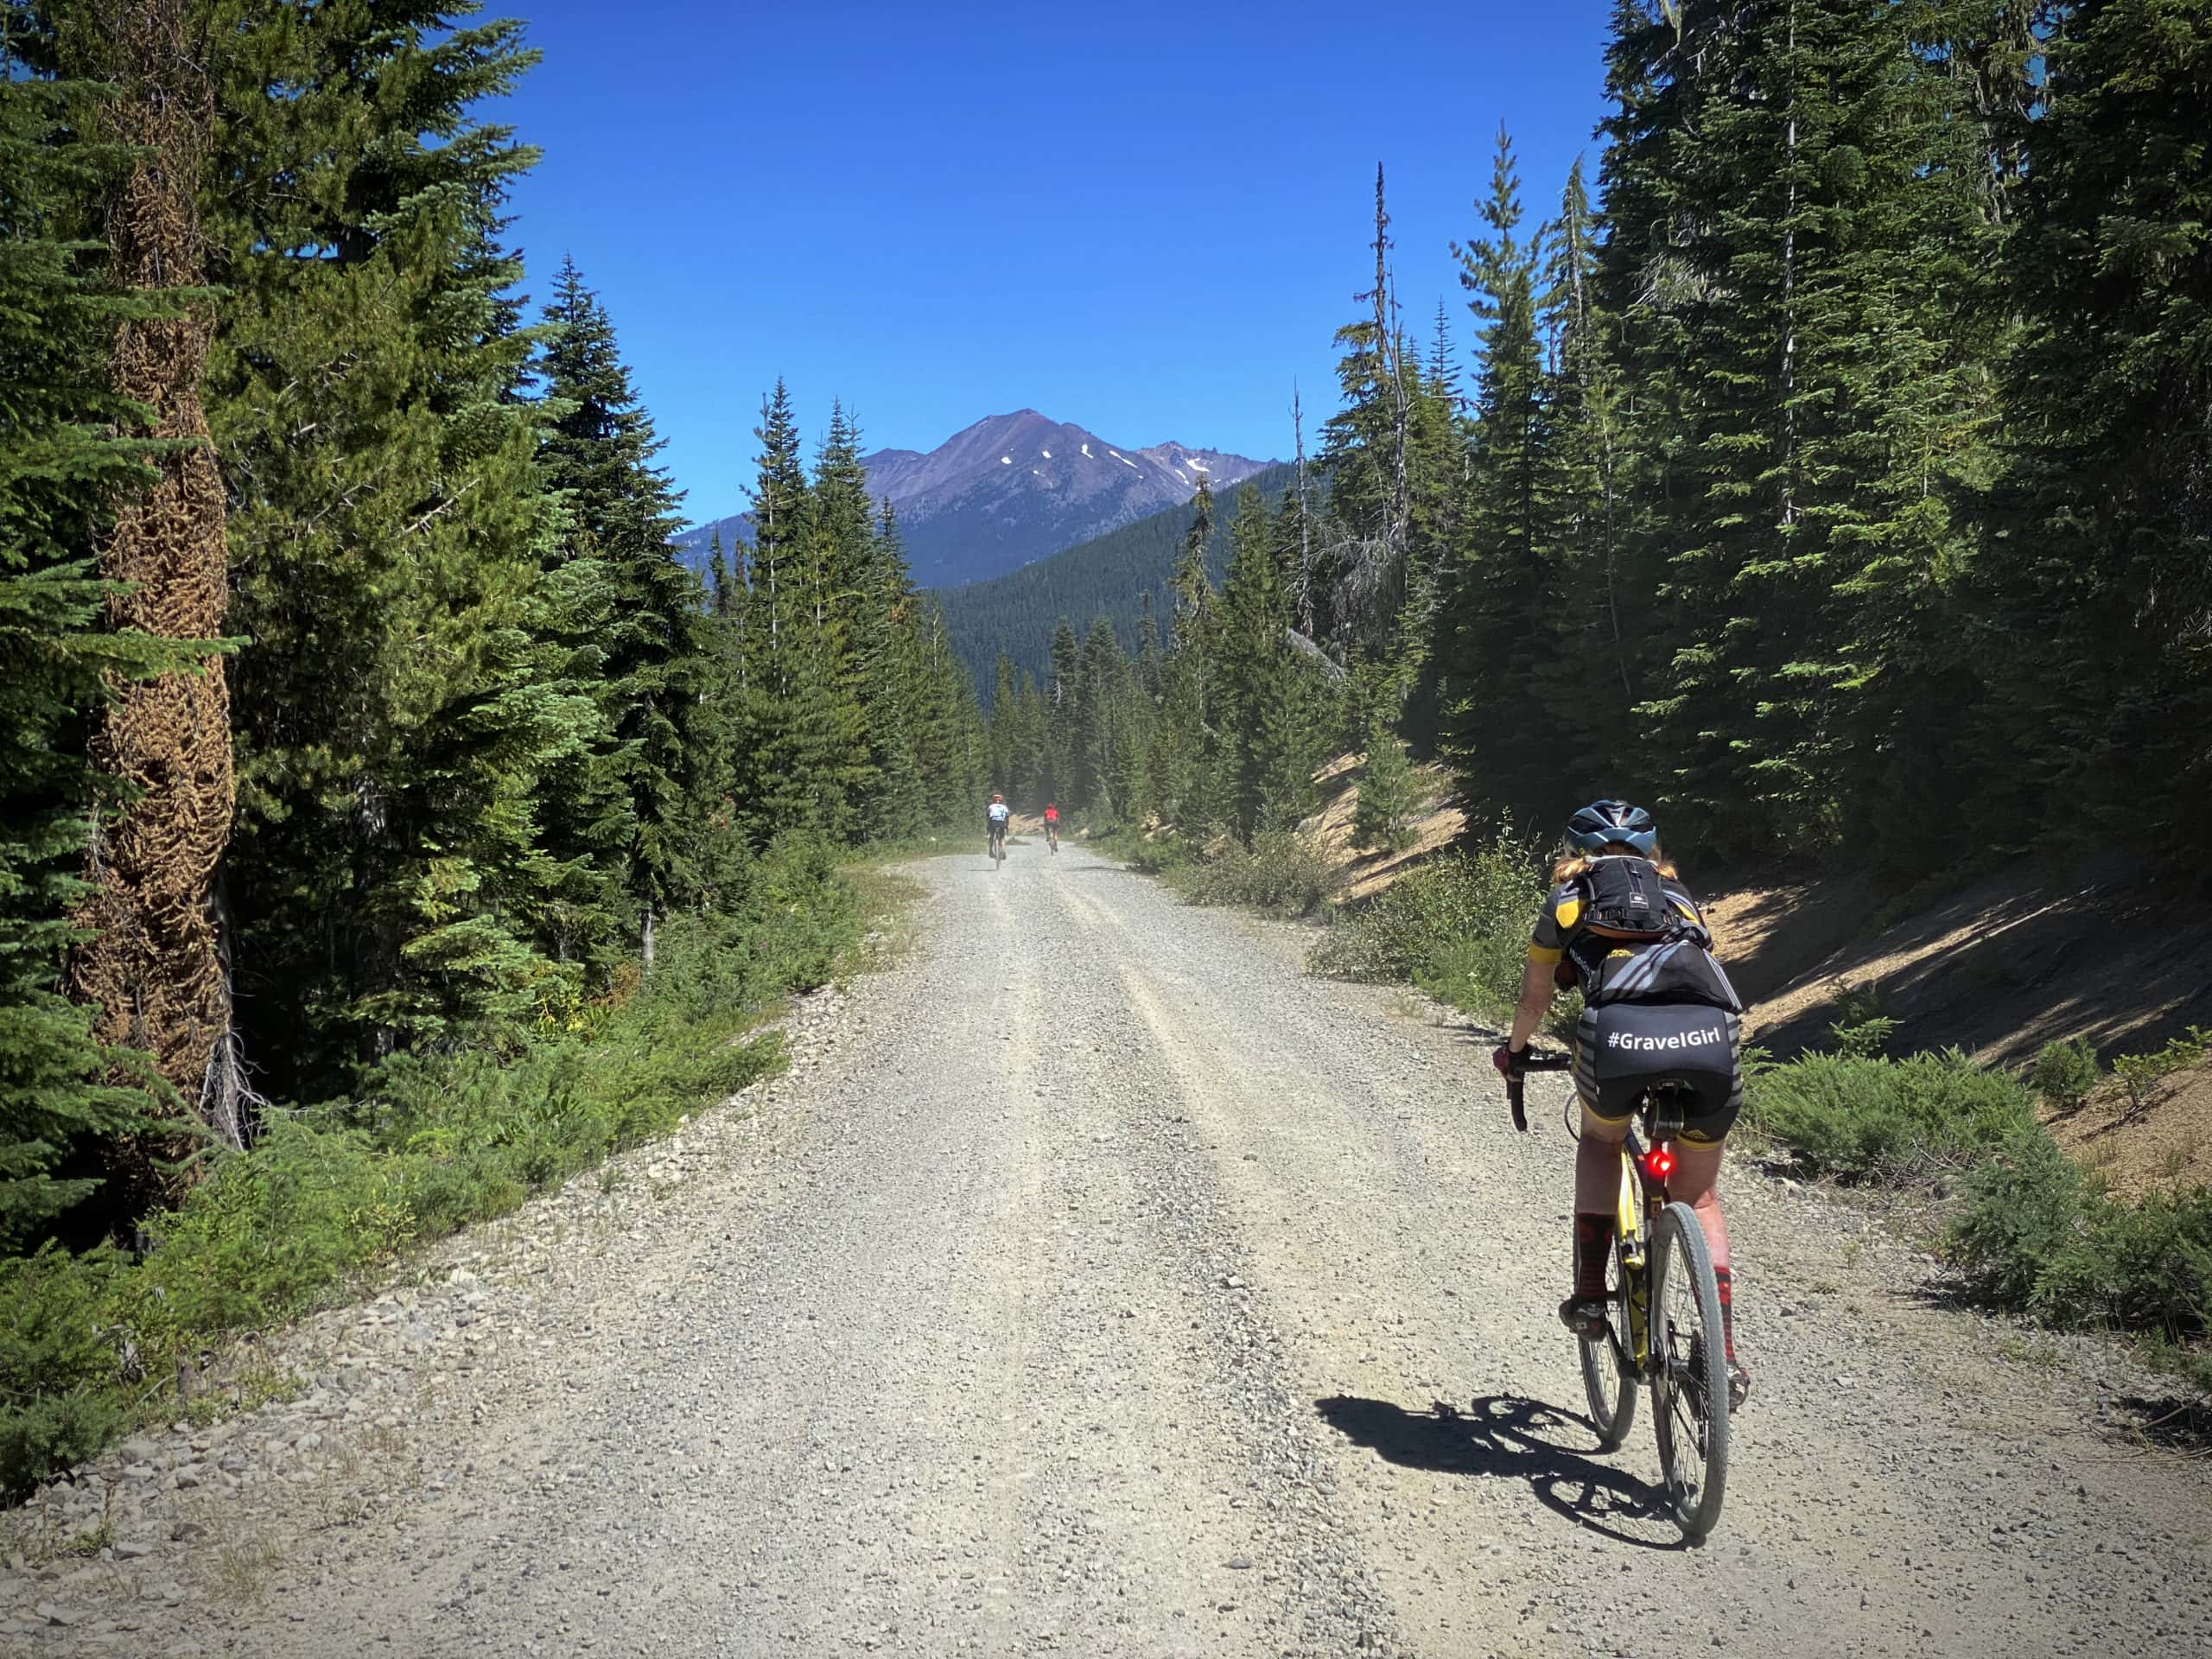 Cyclists riding downhill on gravel road with Diamond Peak in distance.